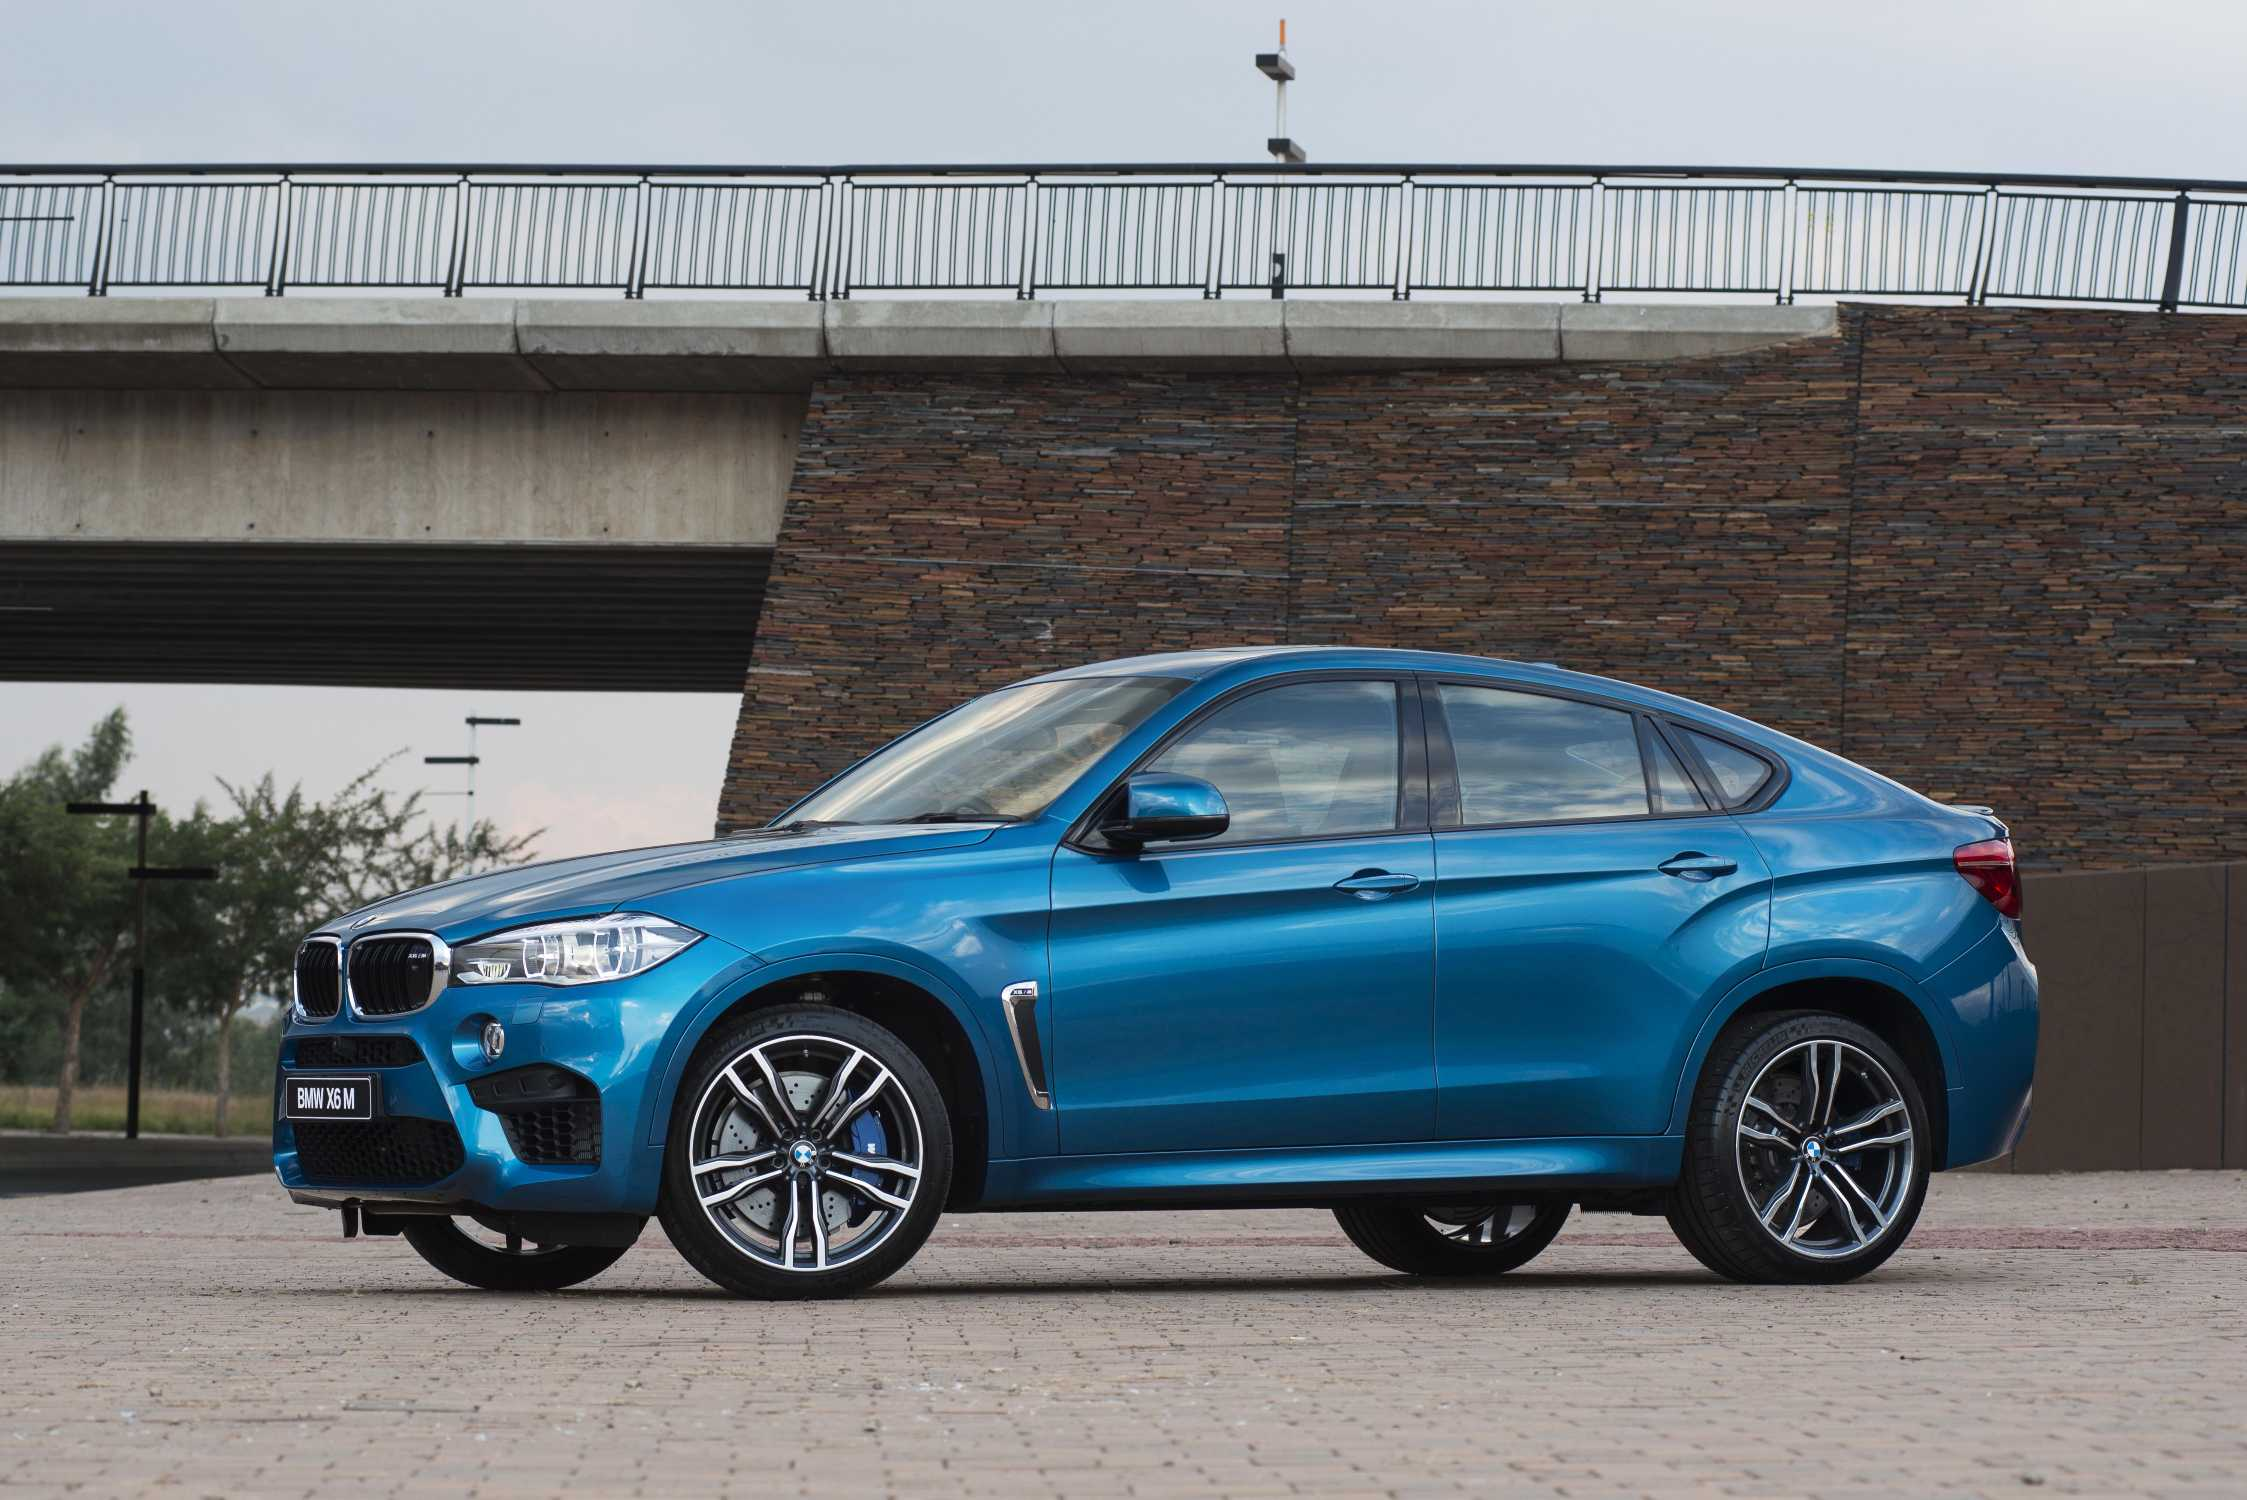 The new bmw x6 m now available in south africa 03 2015 for South motors bmw mini